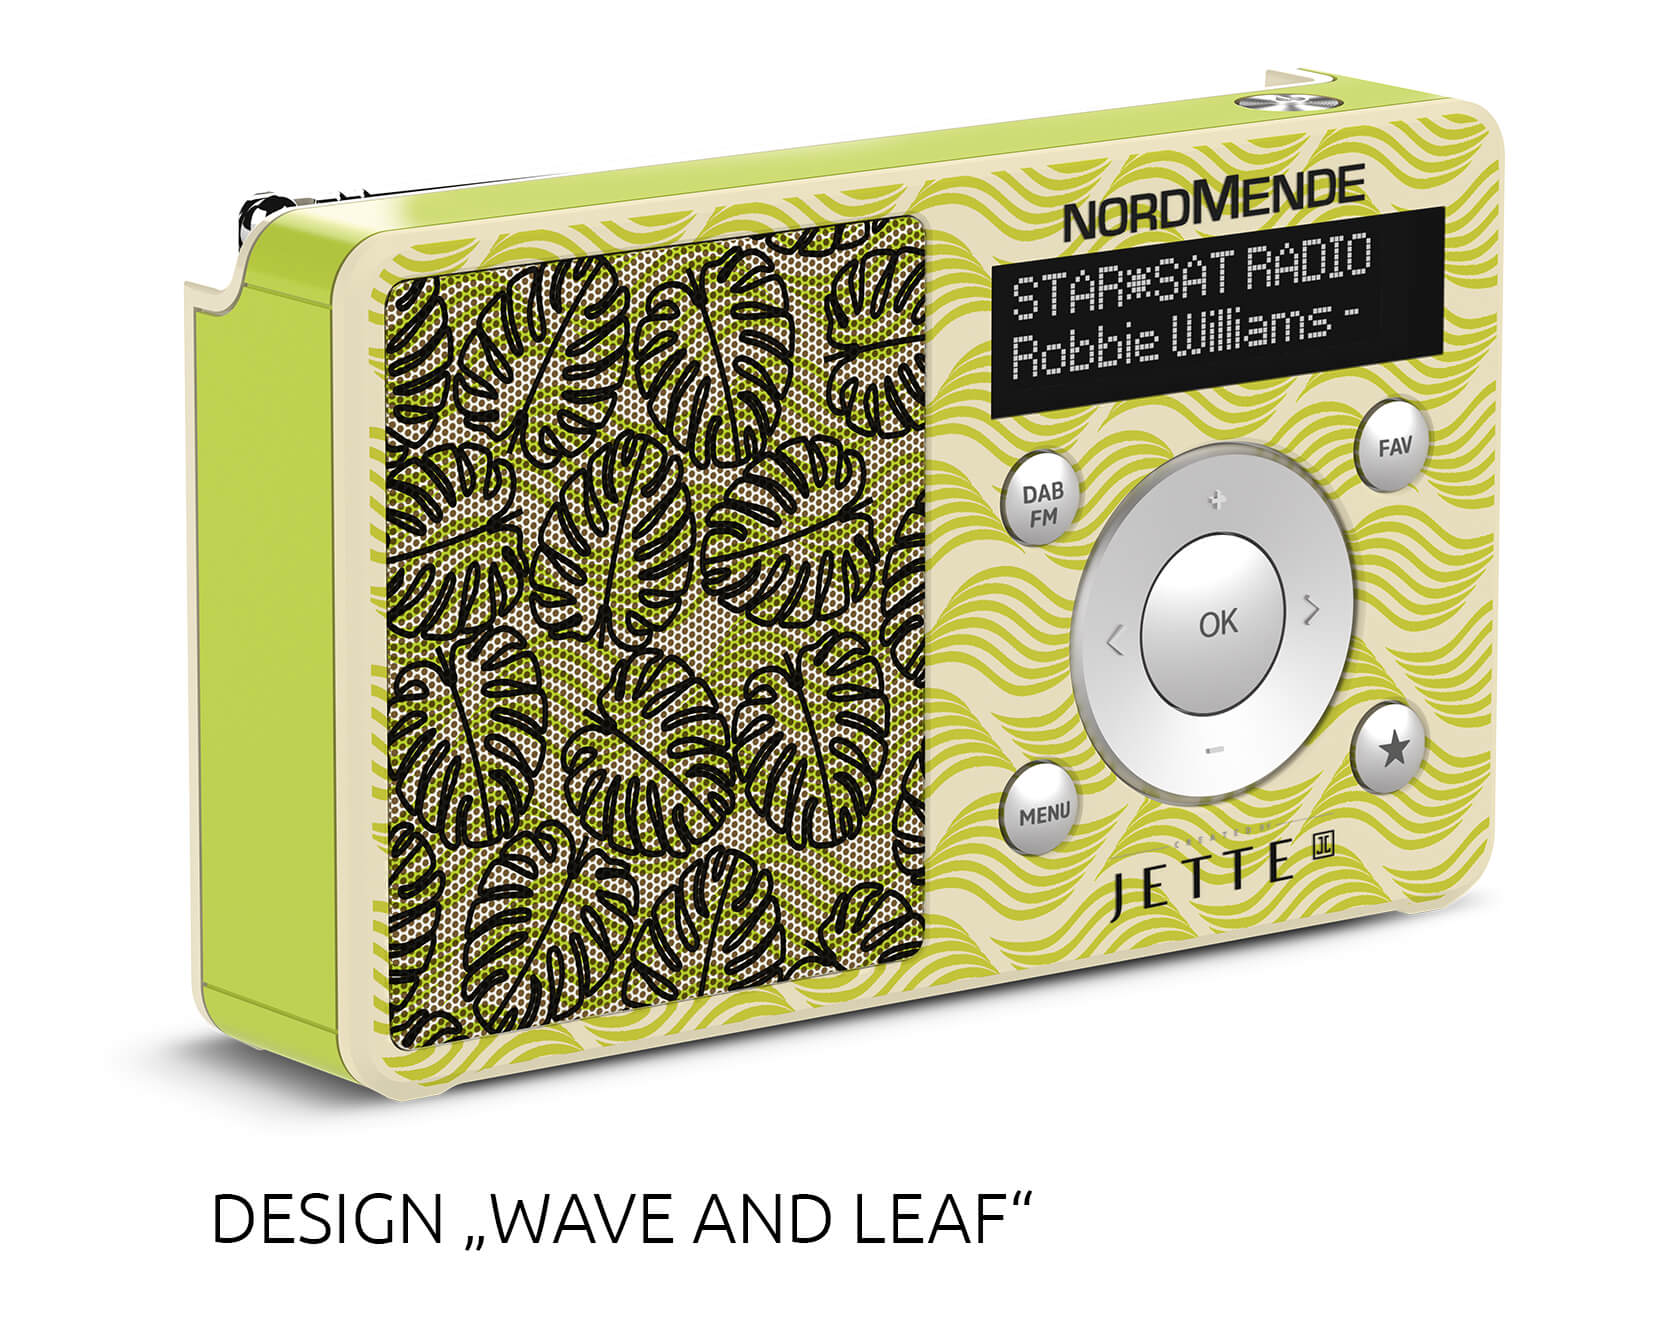 Design Wave and Leaf